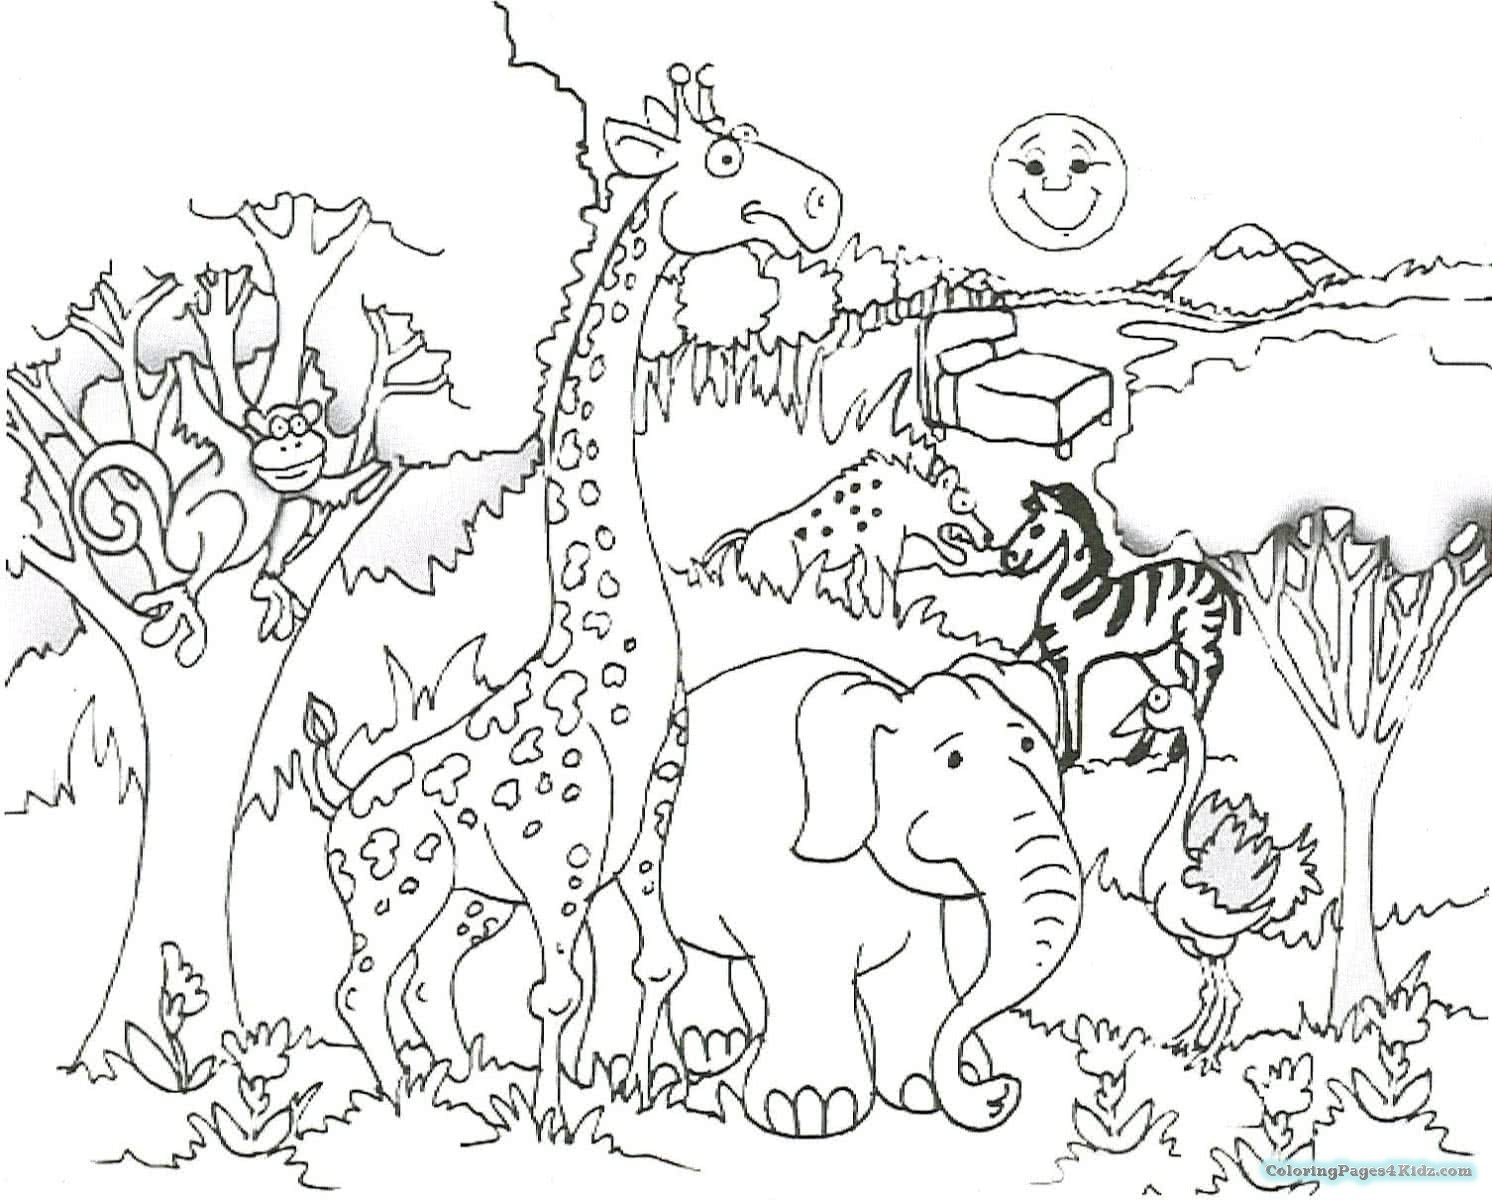 African Safari Animals Coloring Pages at GetDrawings.com | Free for ...